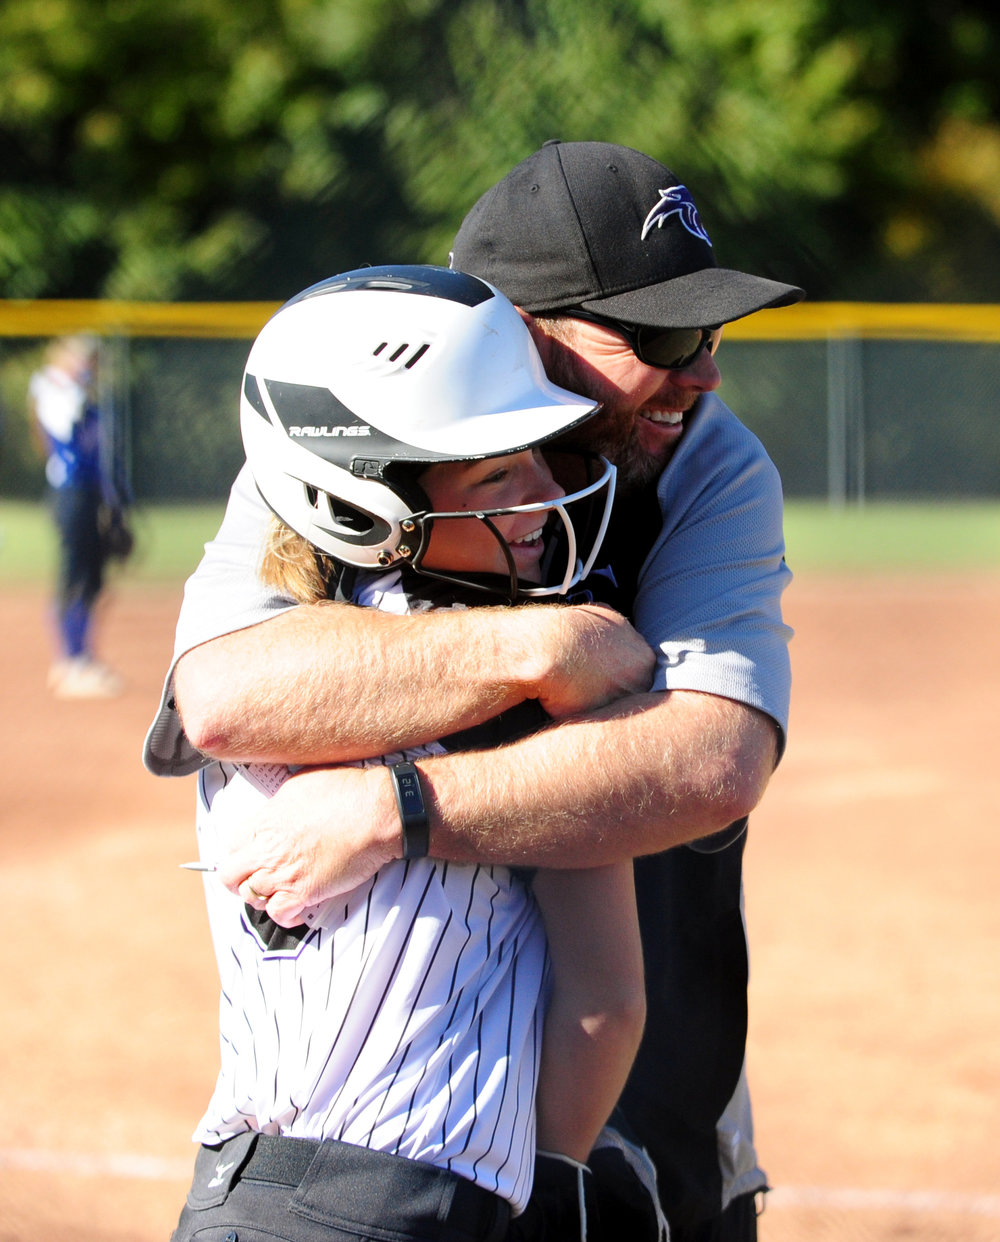 NICK INGRAM/Citizen photo Park Hill South coach Josh Walker hugs sophomore second baseman Emma Beuerlein before she bats against Central.